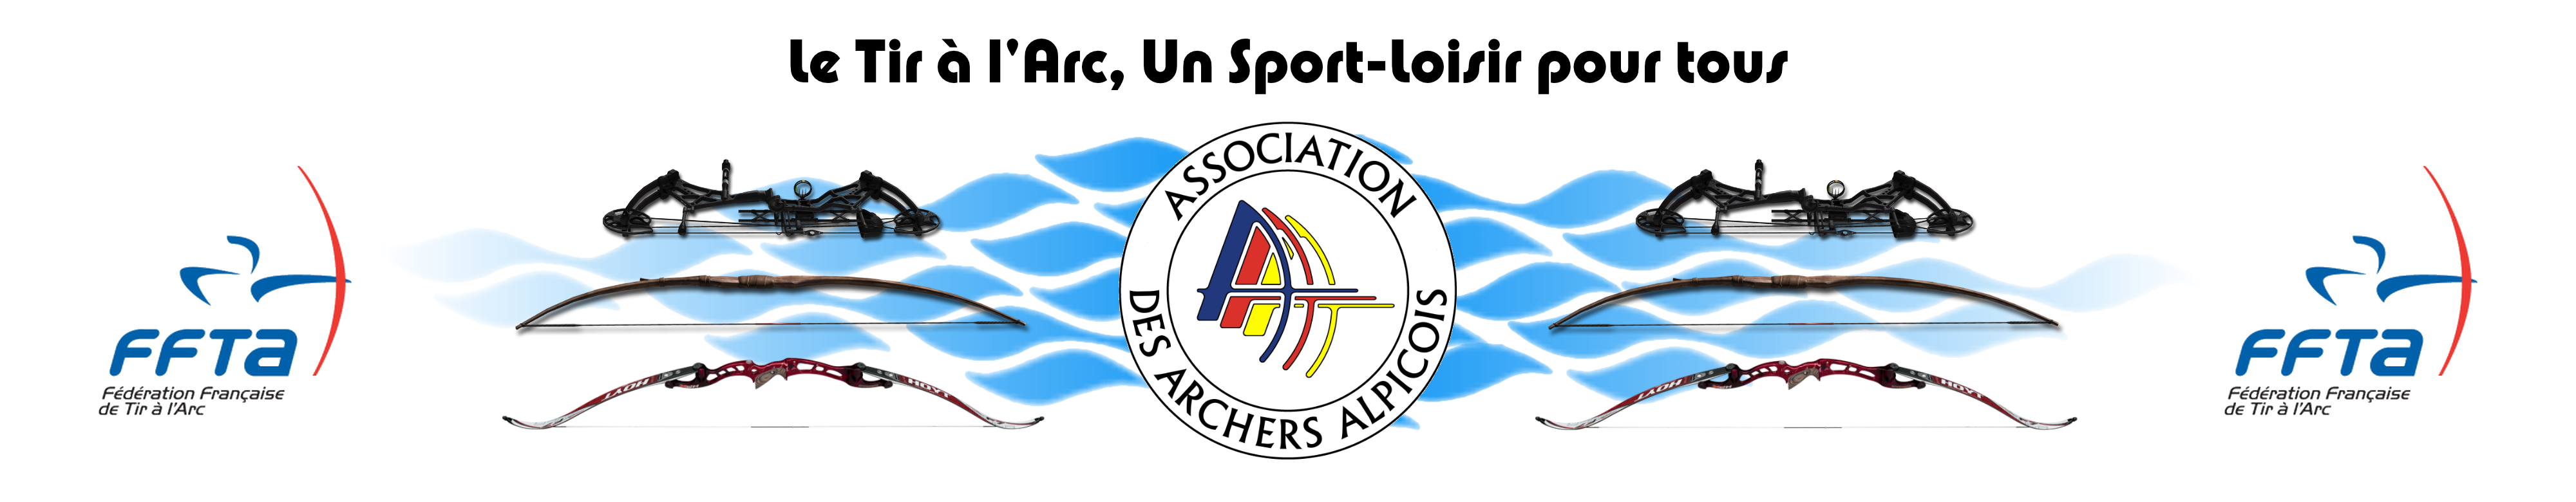 Association des Archers Alpicois